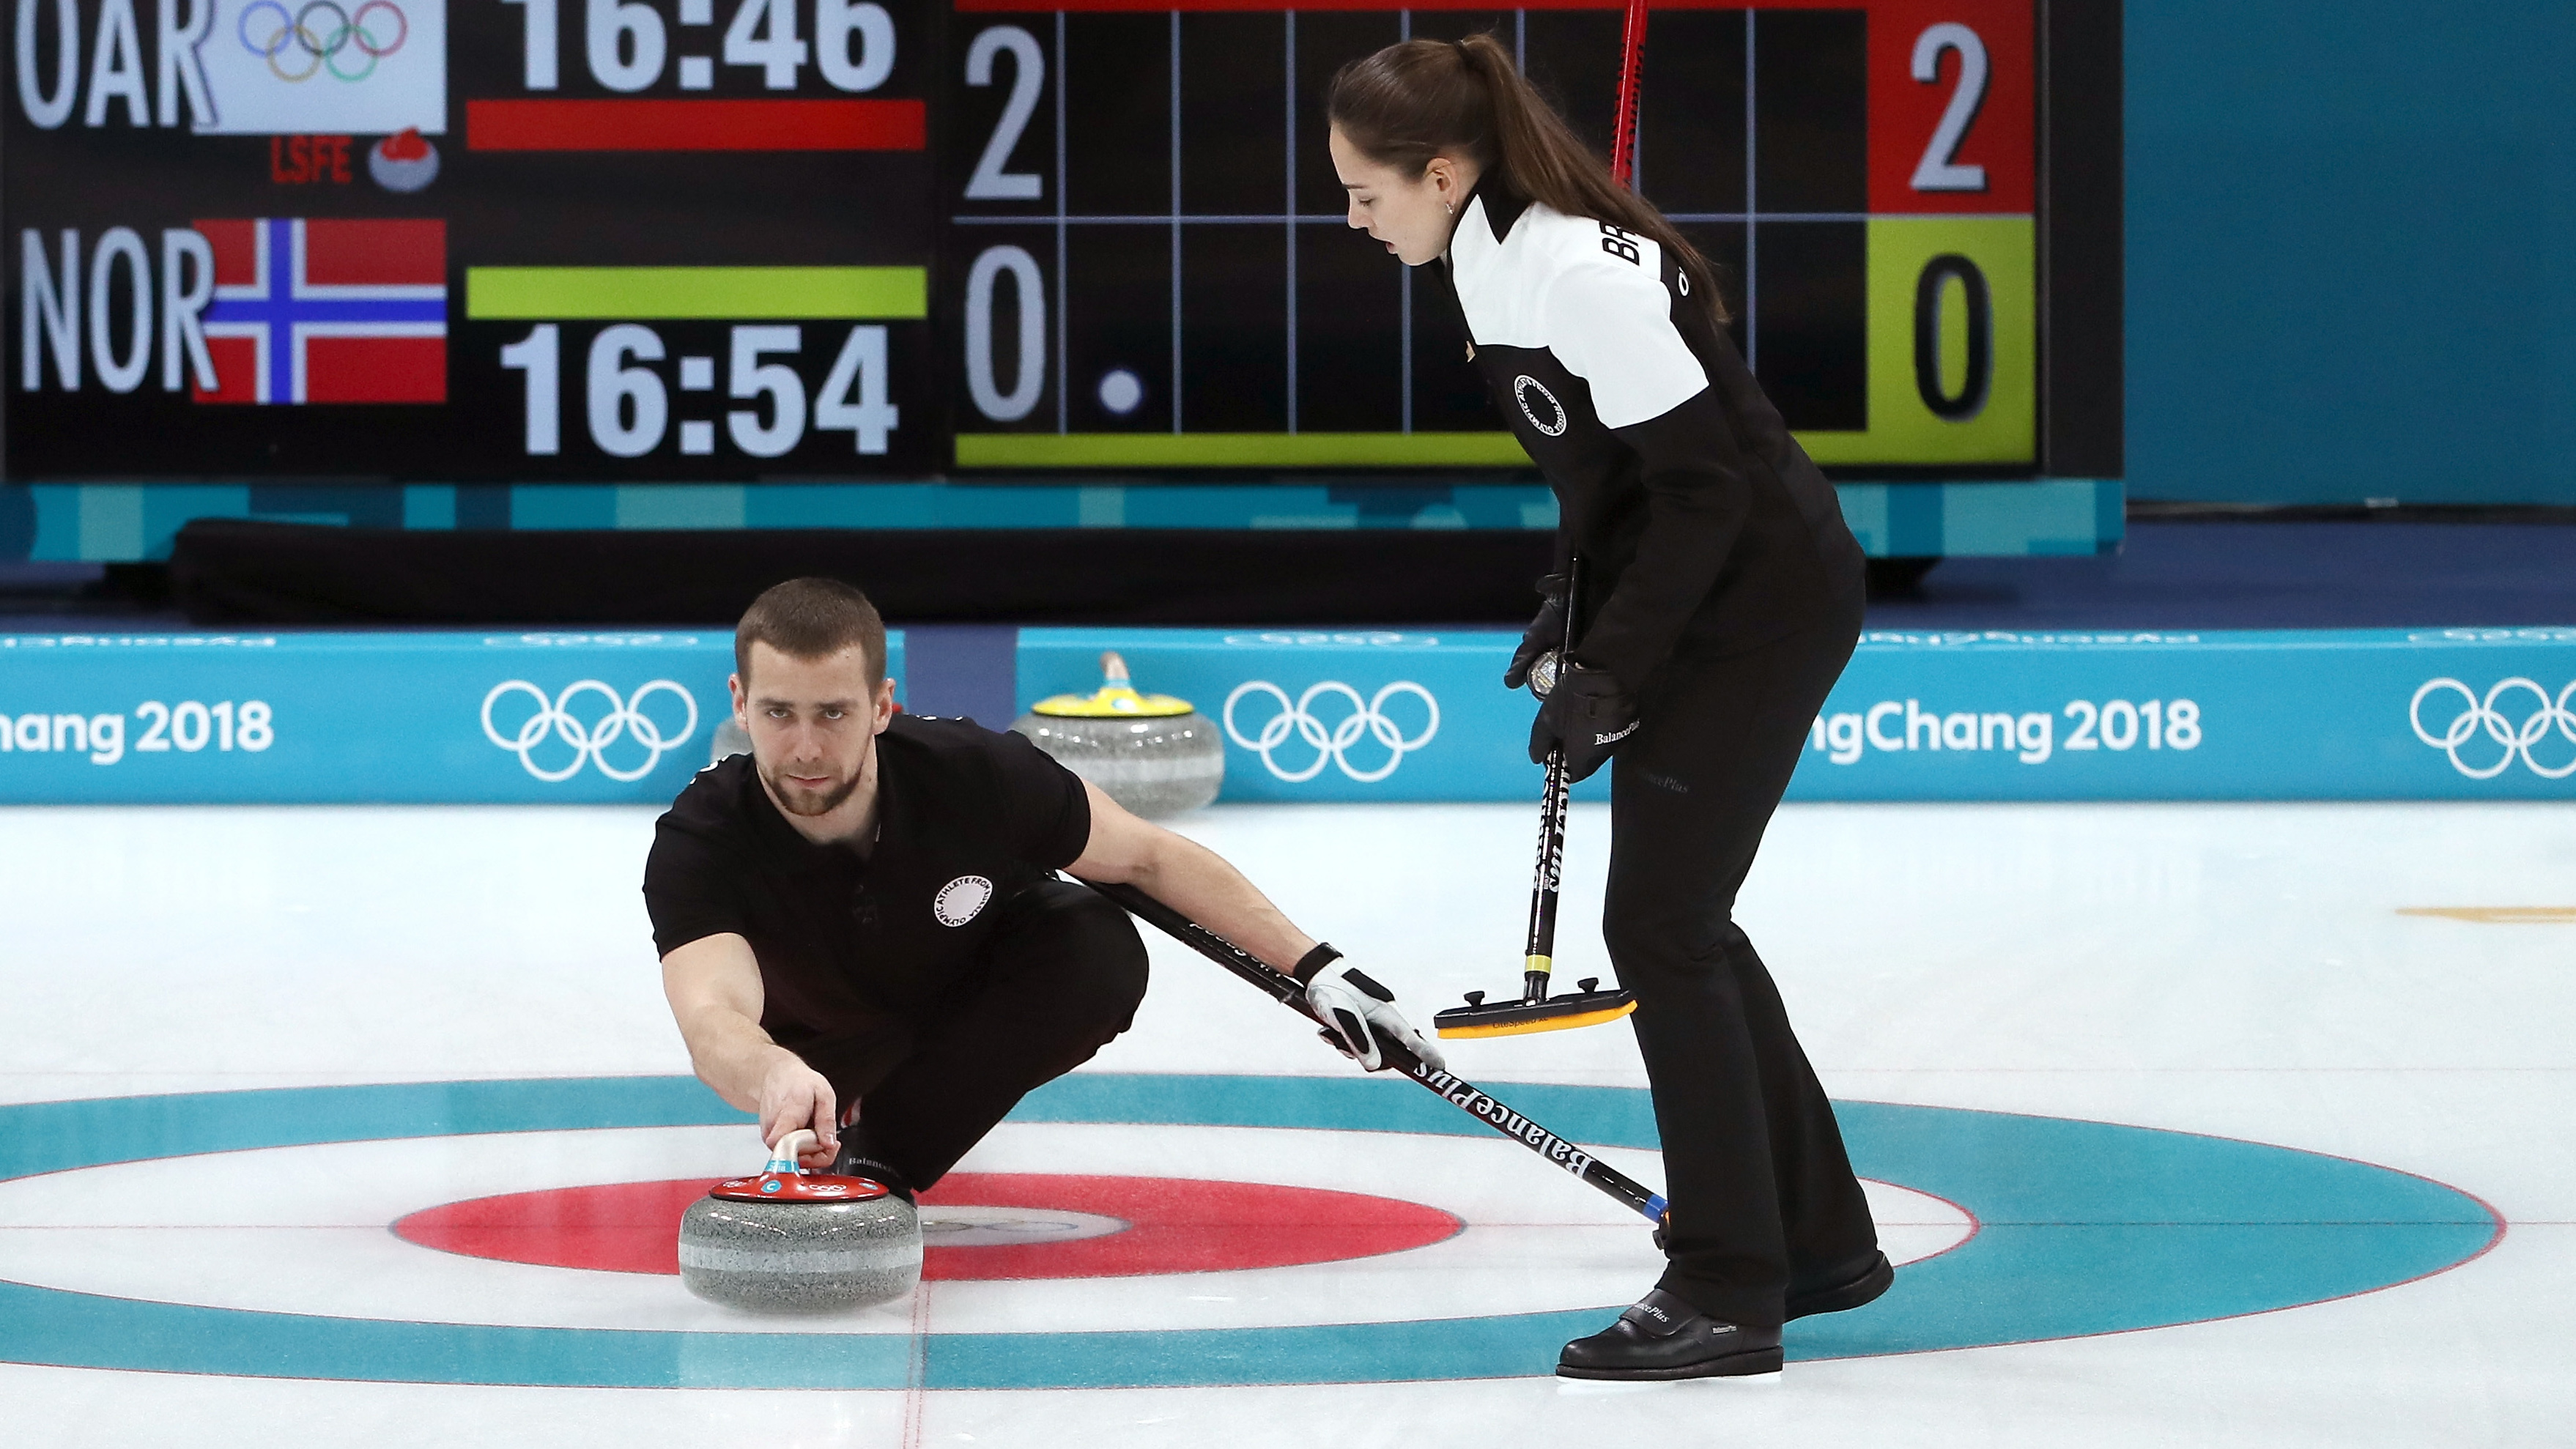 Russian curler looses medal over drug cheating